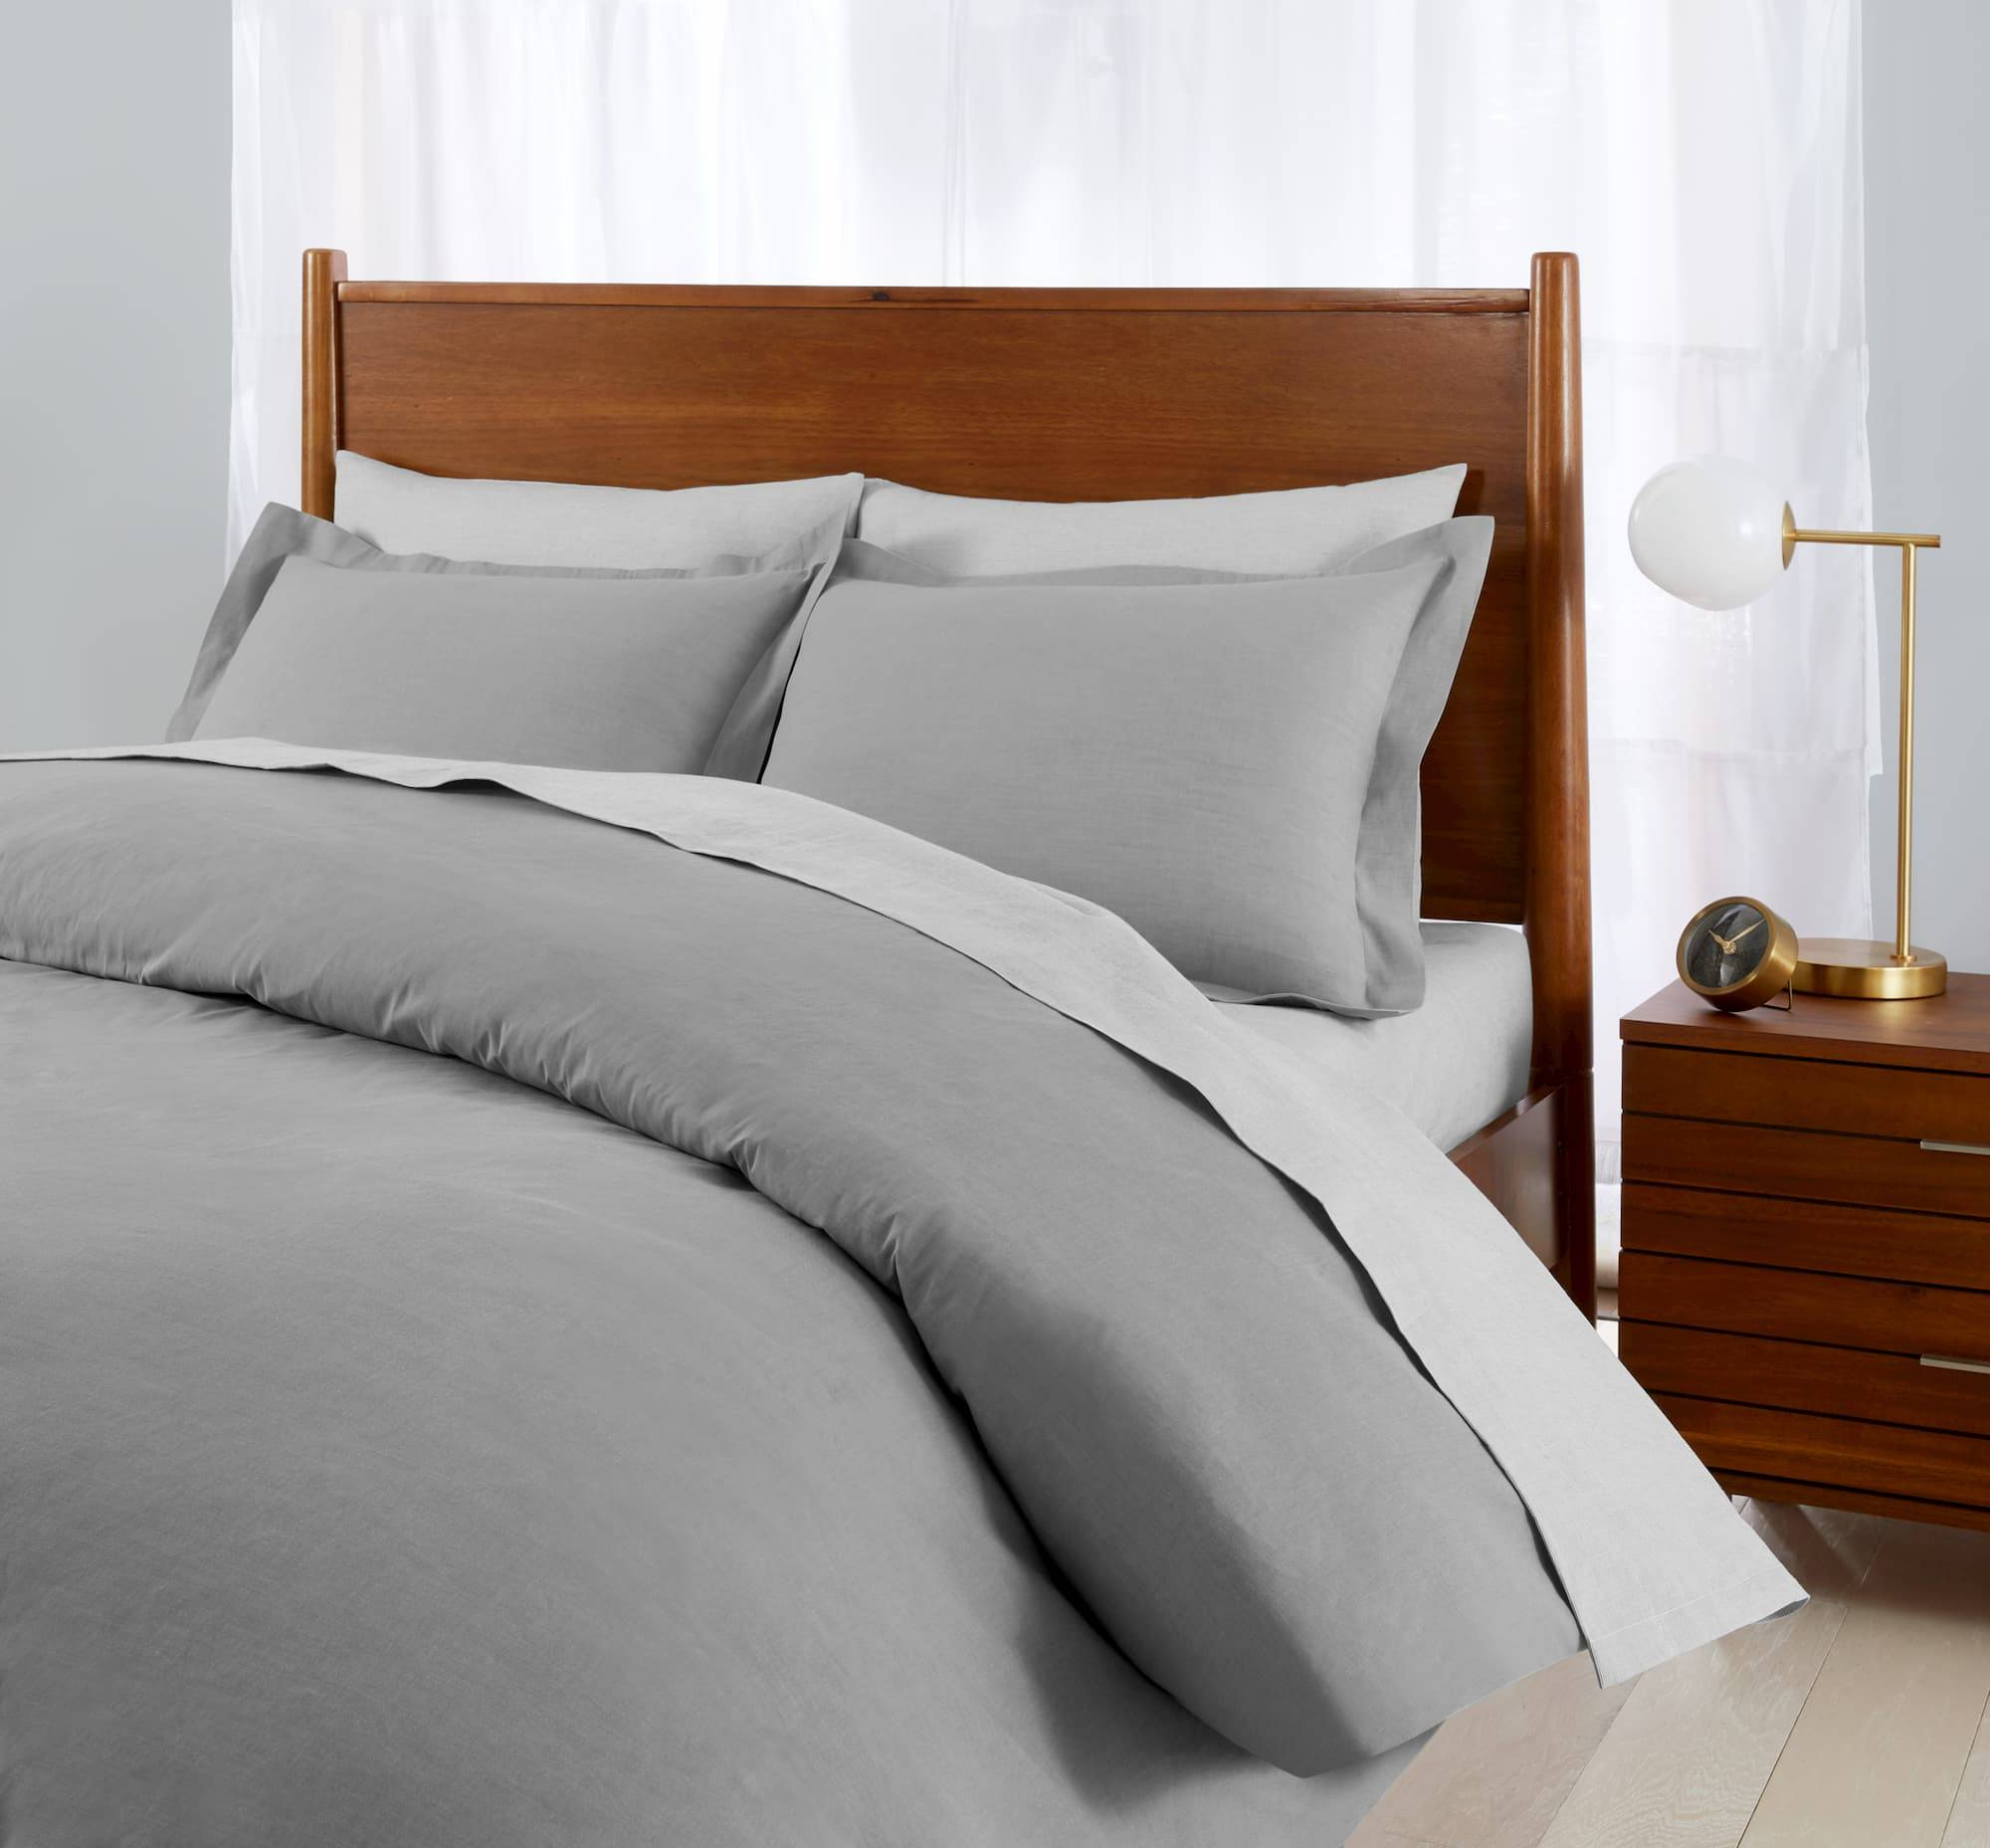 Essential Cotton Bed Sheets, Duvet Covers and Pillow Shams in Gray